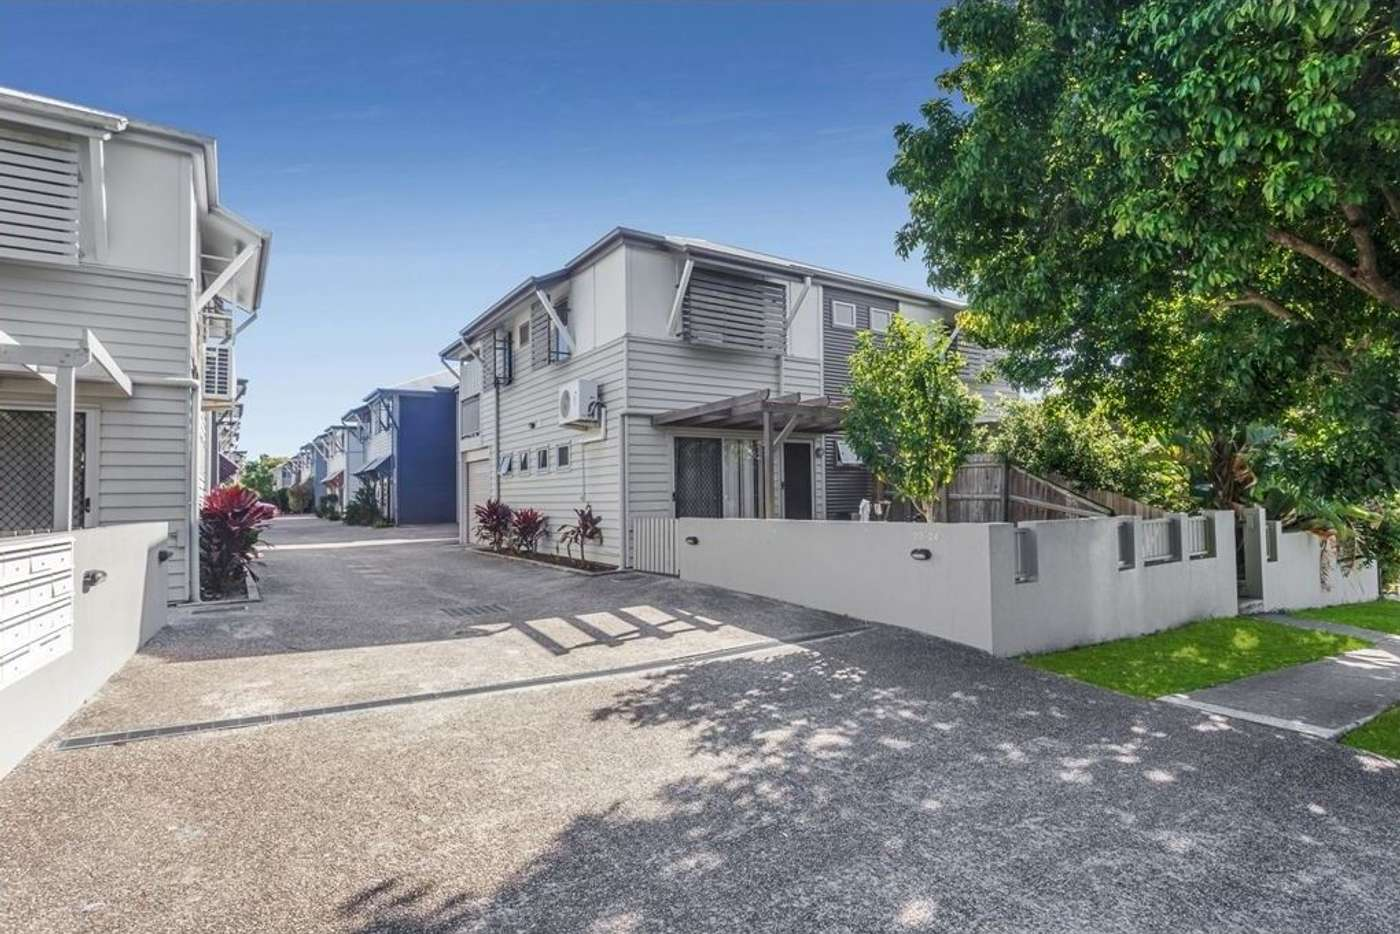 Main view of Homely townhouse listing, 6/22 Grasspan Street, Zillmere QLD 4034